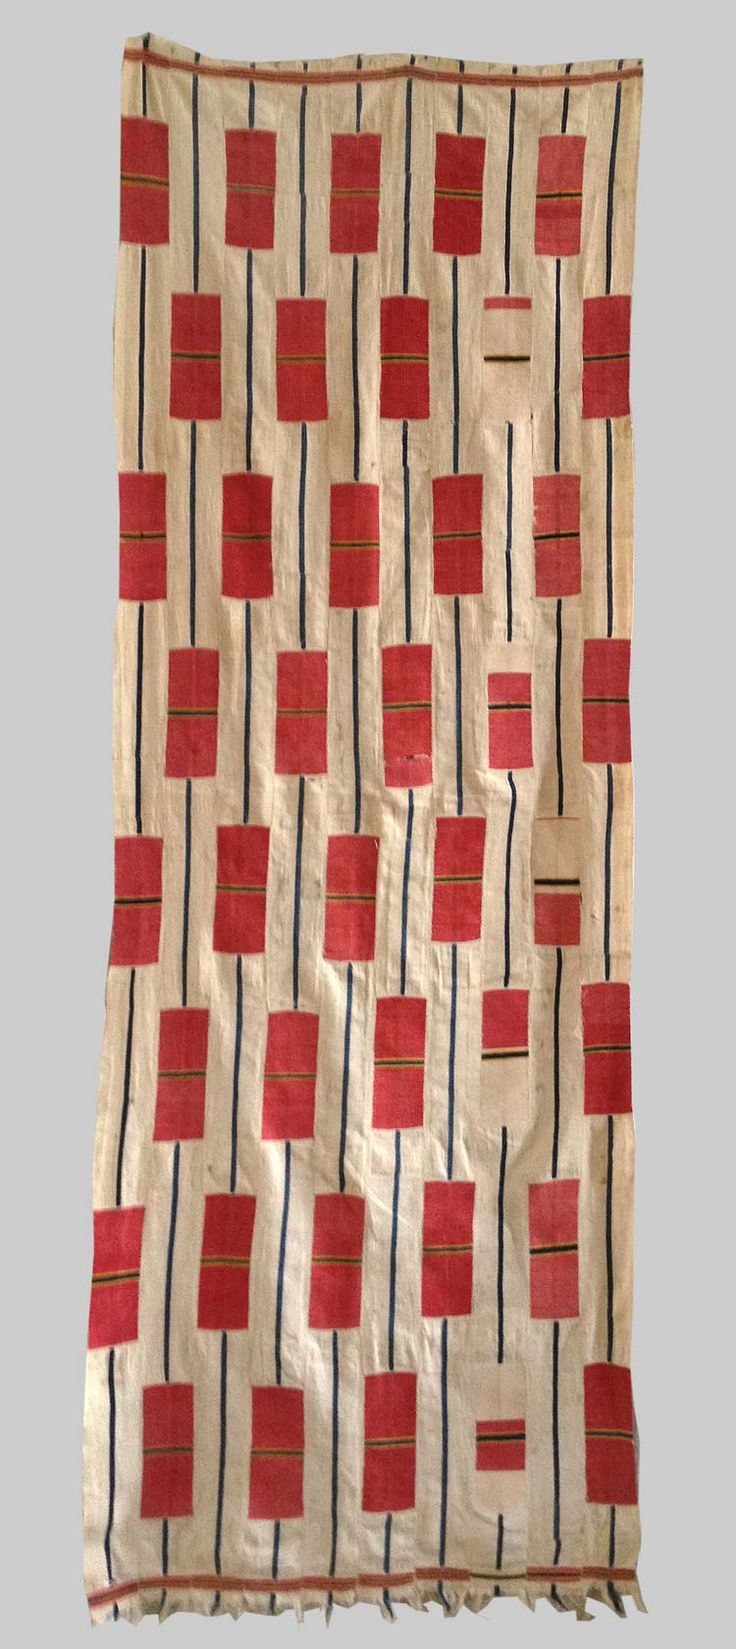 Cotton strip weaving Woven in 10 strips from the ewe people  Ghana early 20th century